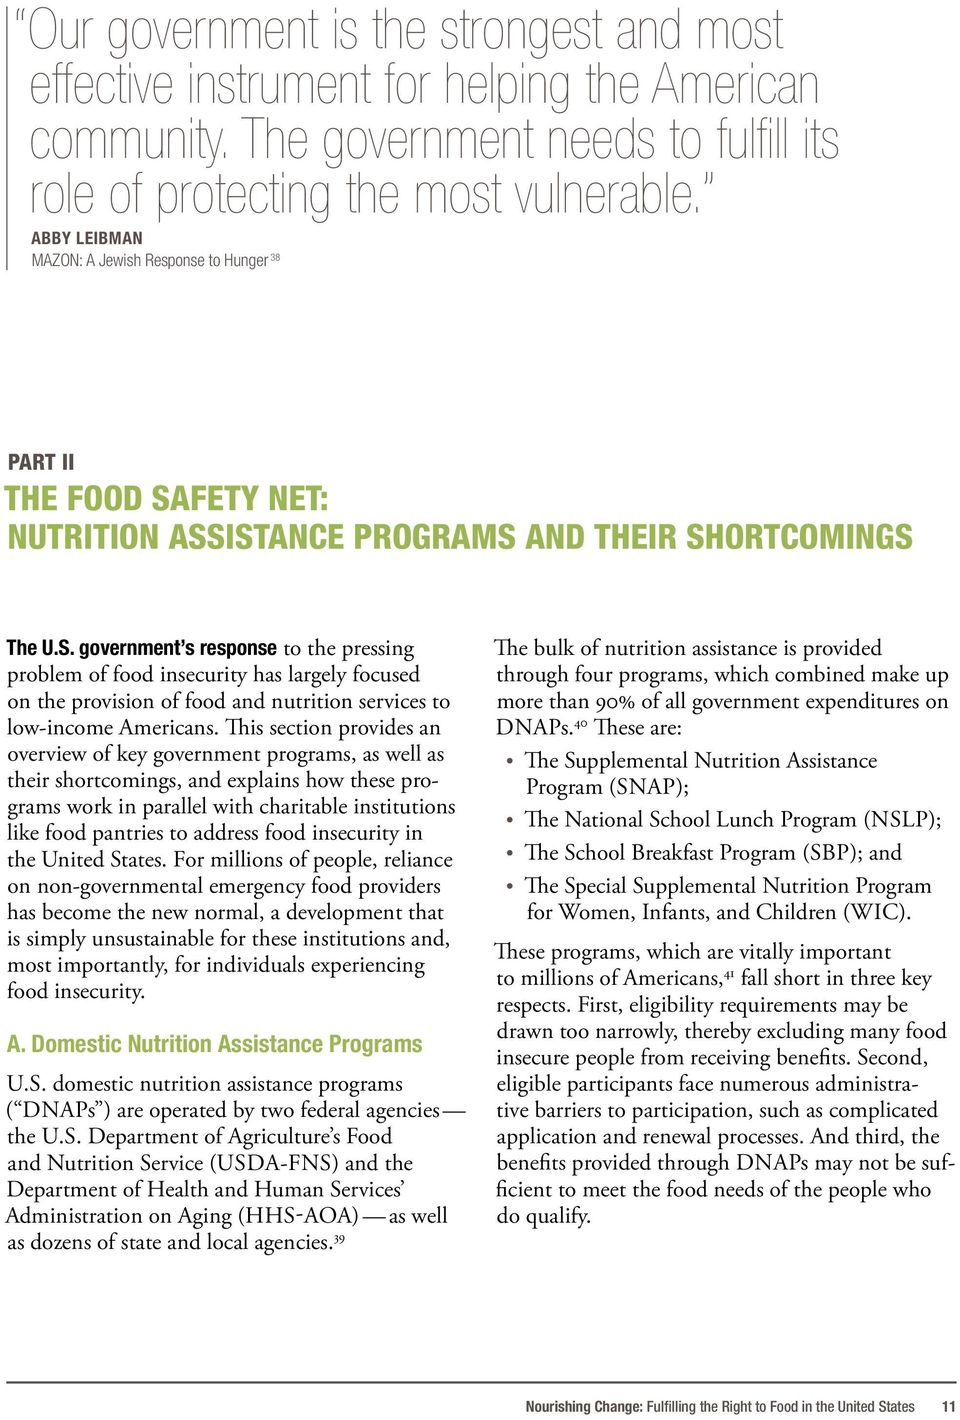 FETY NET: NUTRITION ASSISTANCE PROGRAMS AND THEIR SHORTCOMINGS The U.S. government s response to the pressing problem of food insecurity has largely focused on the provision of food and nutrition services to low-income Americans.